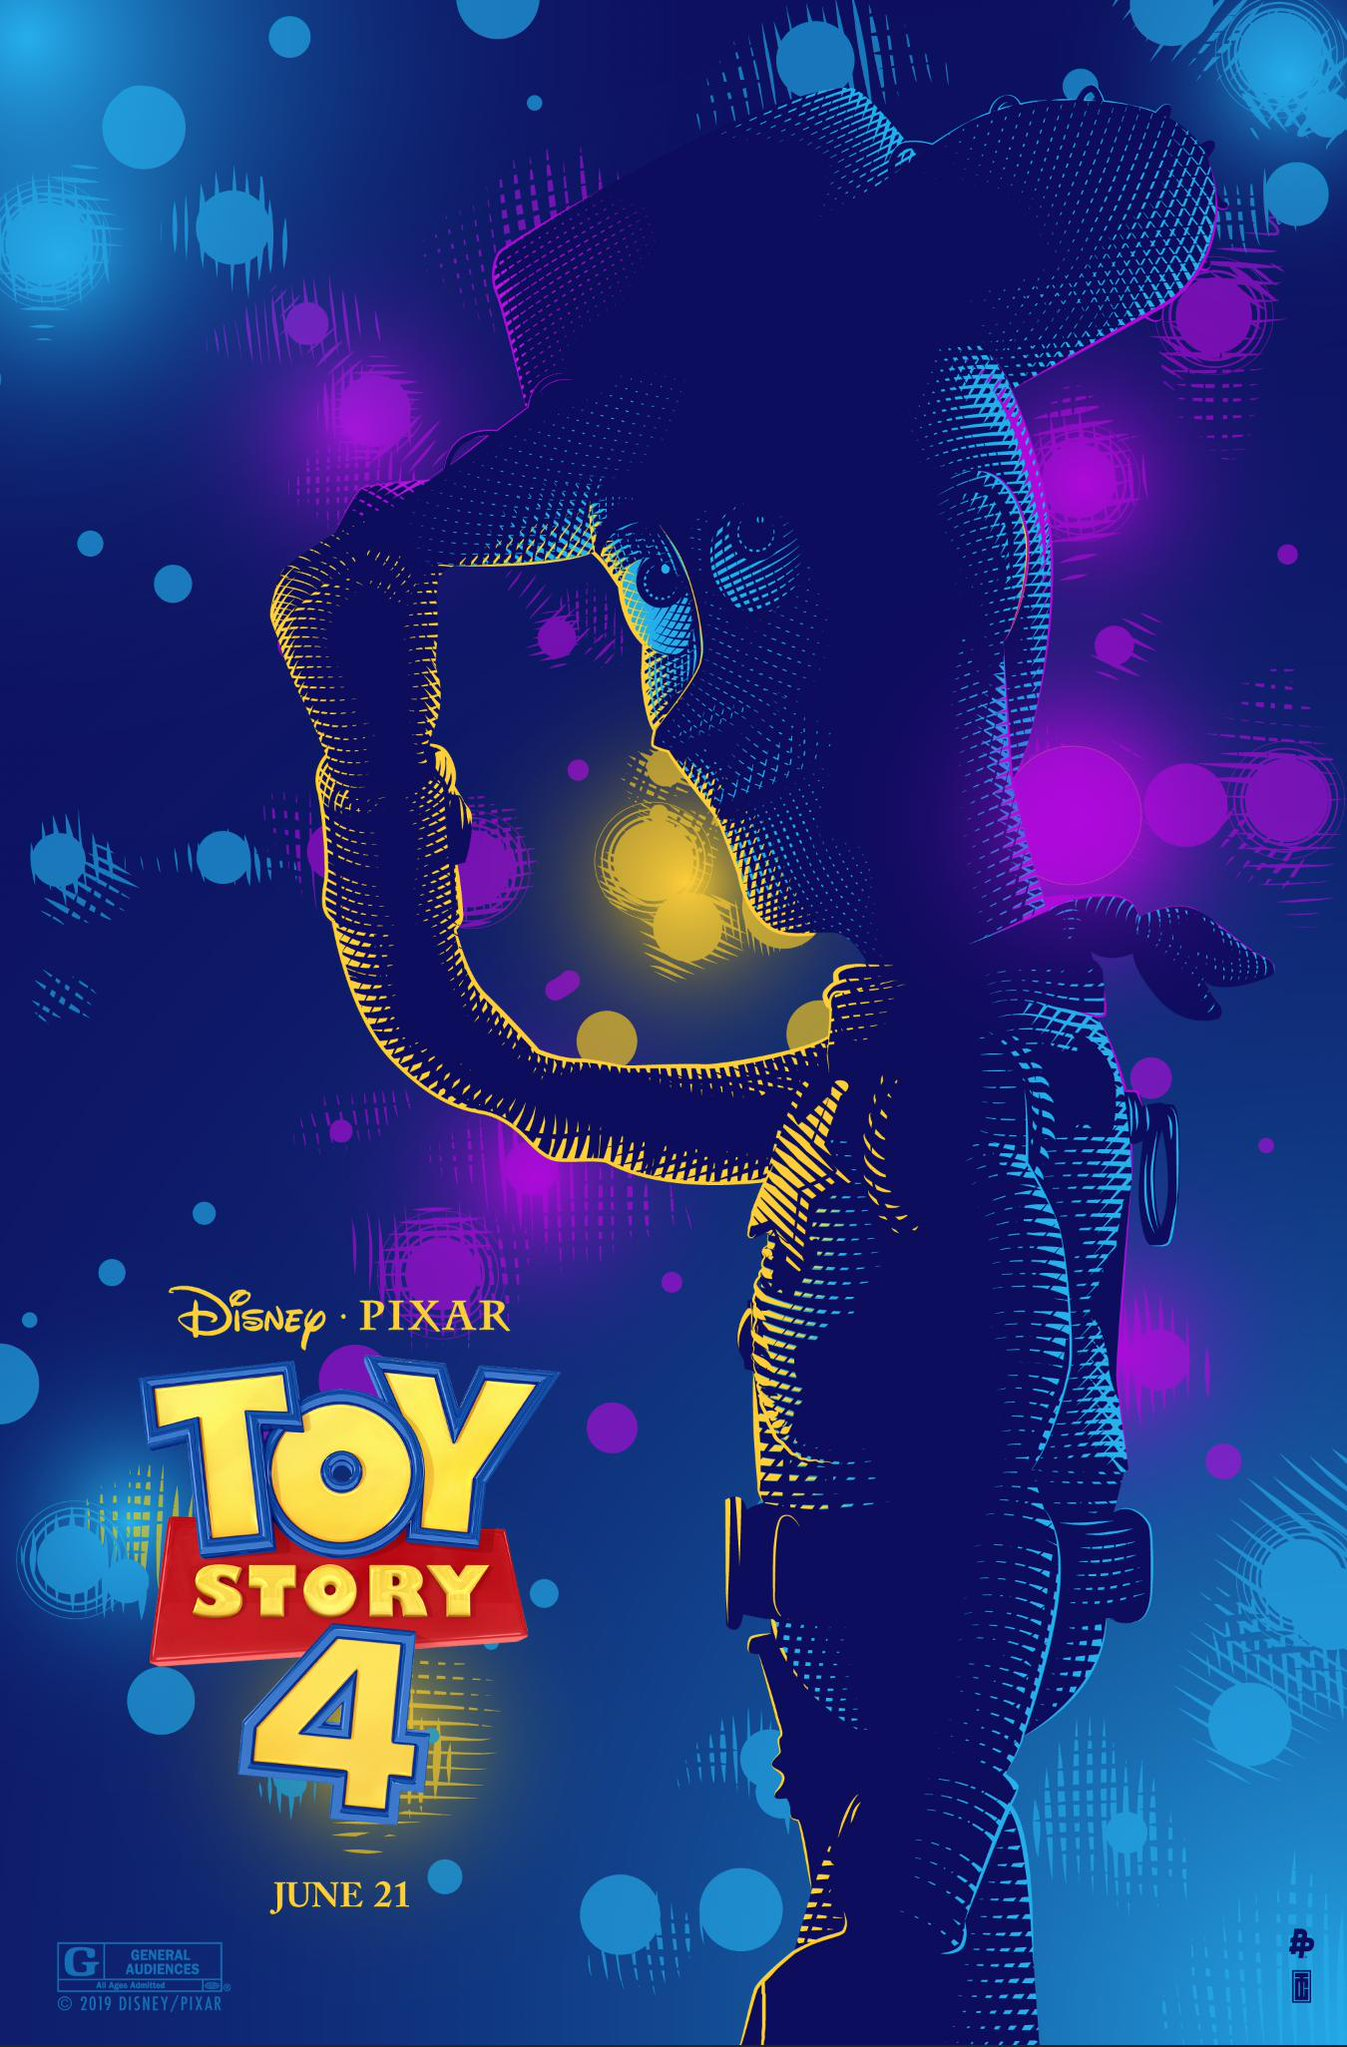 Take A Look At A New Collection Of Stunning Toy Story 4